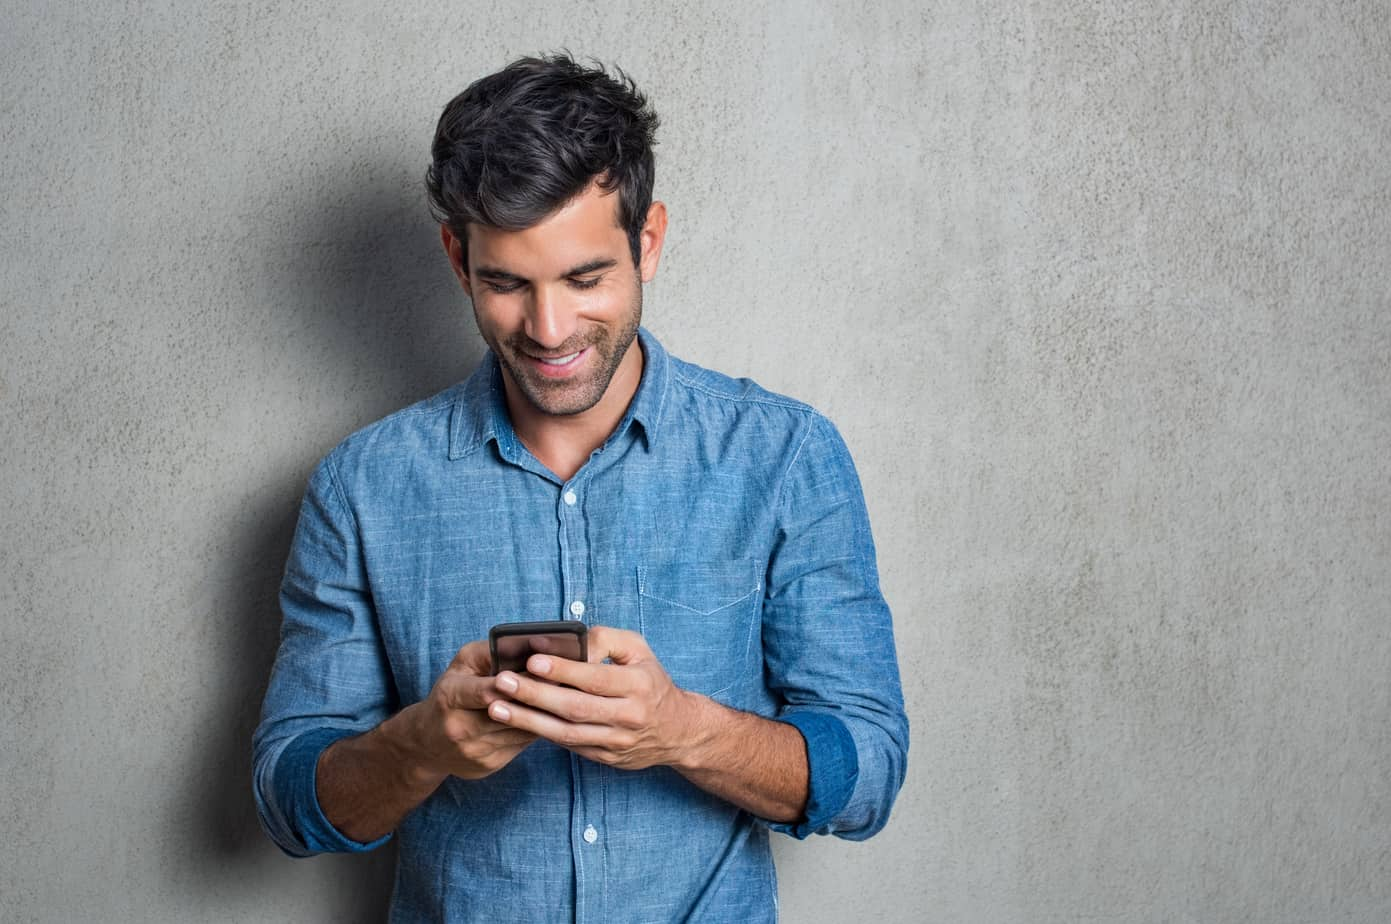 handsome guy smiling at phone - reading flirty texts for him